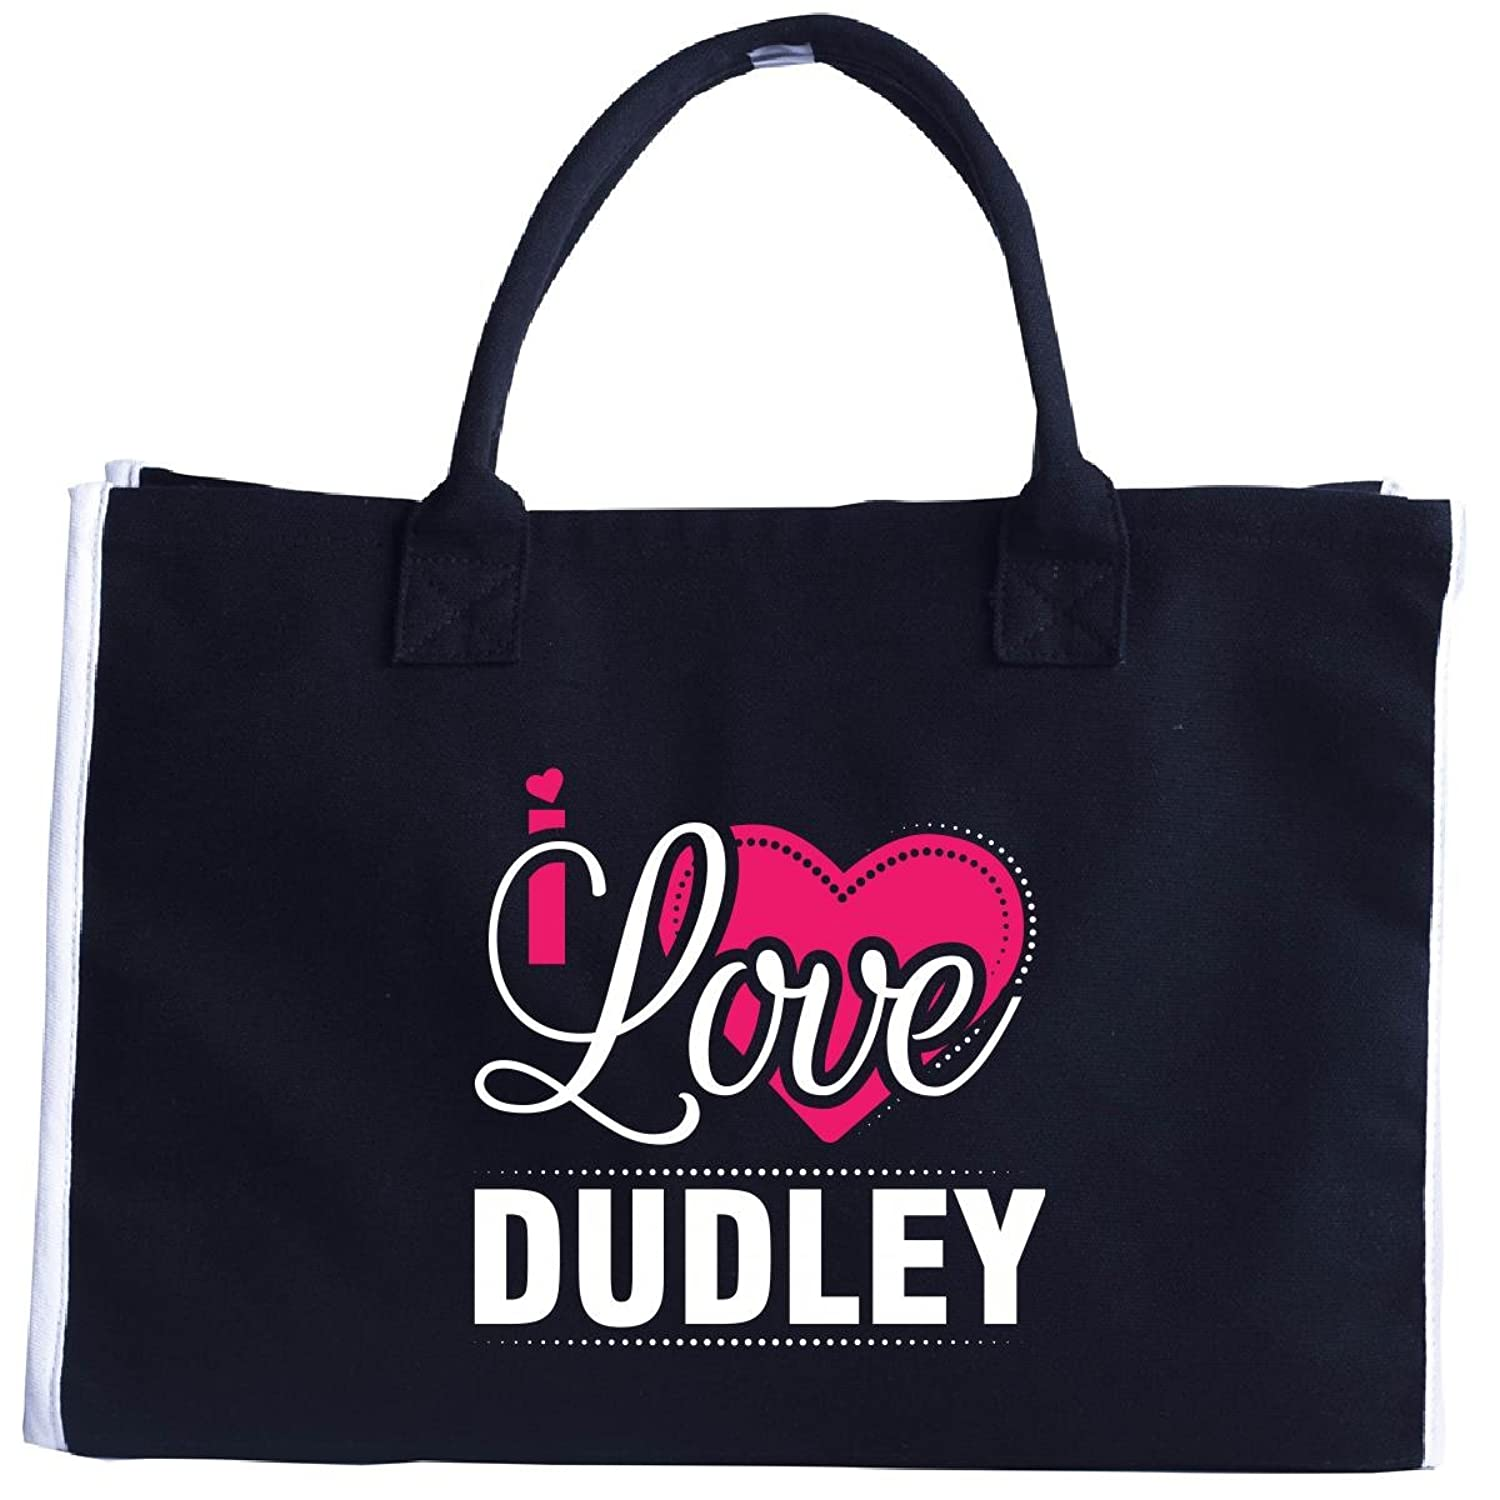 I Love Dudley - Cool Gift For Dudley From Girlfriend - Tote Bag